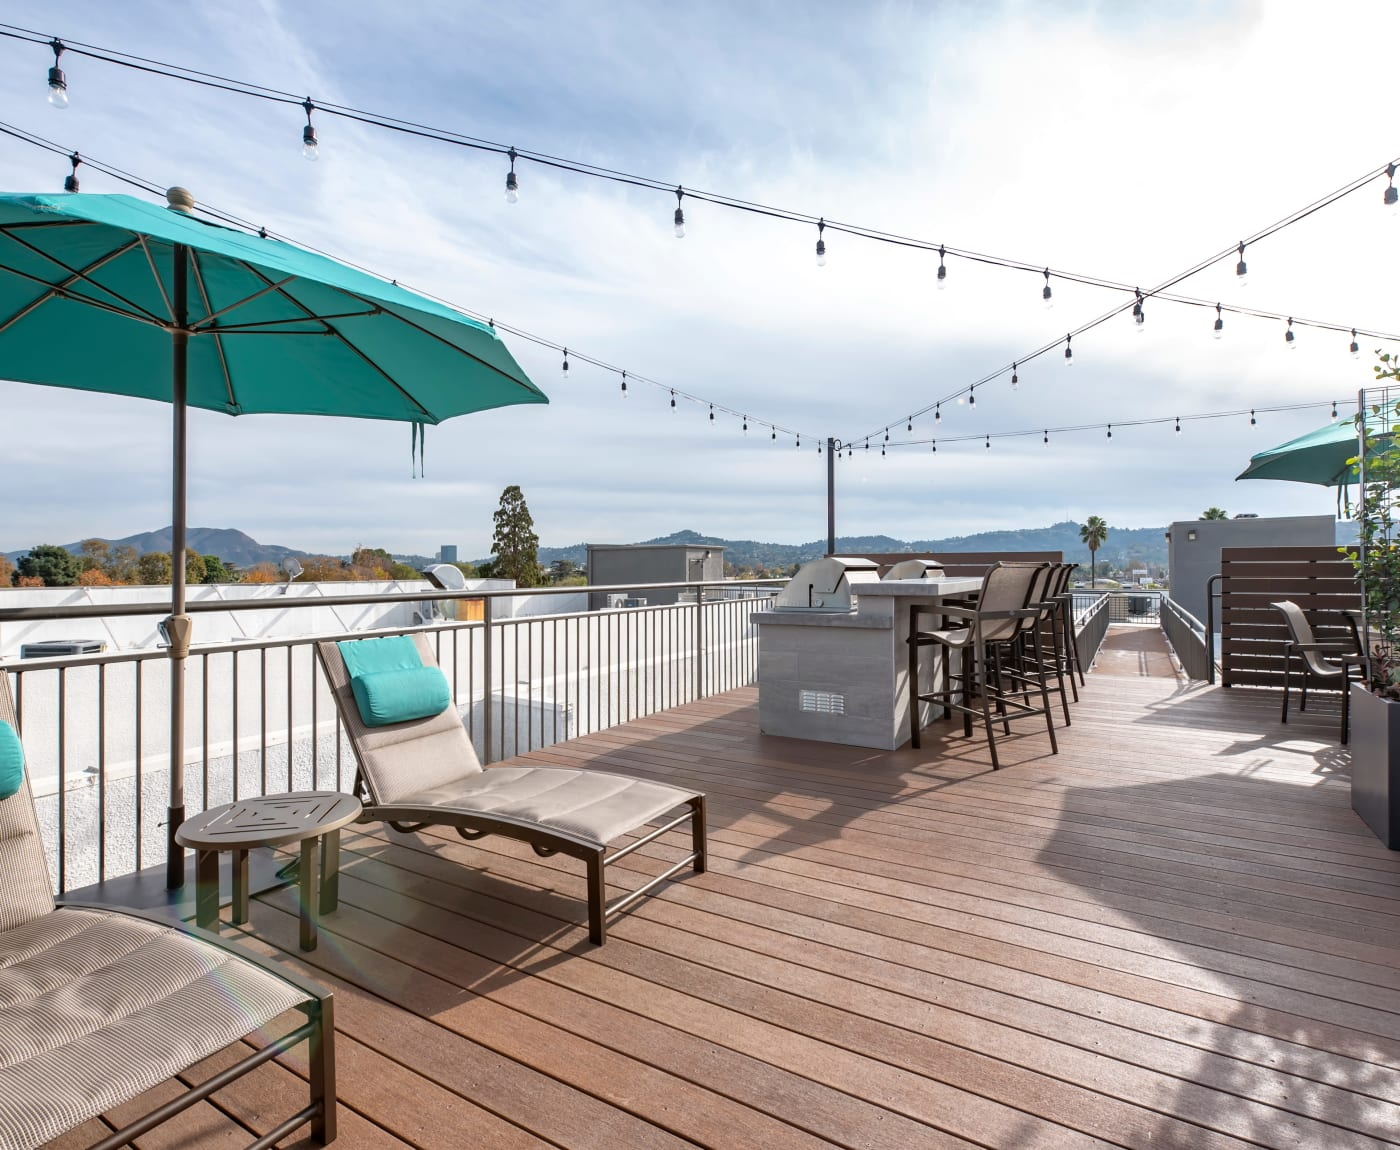 An outdoor rooftop balcony at Vue at Laurel Canyon in Valley Village, California